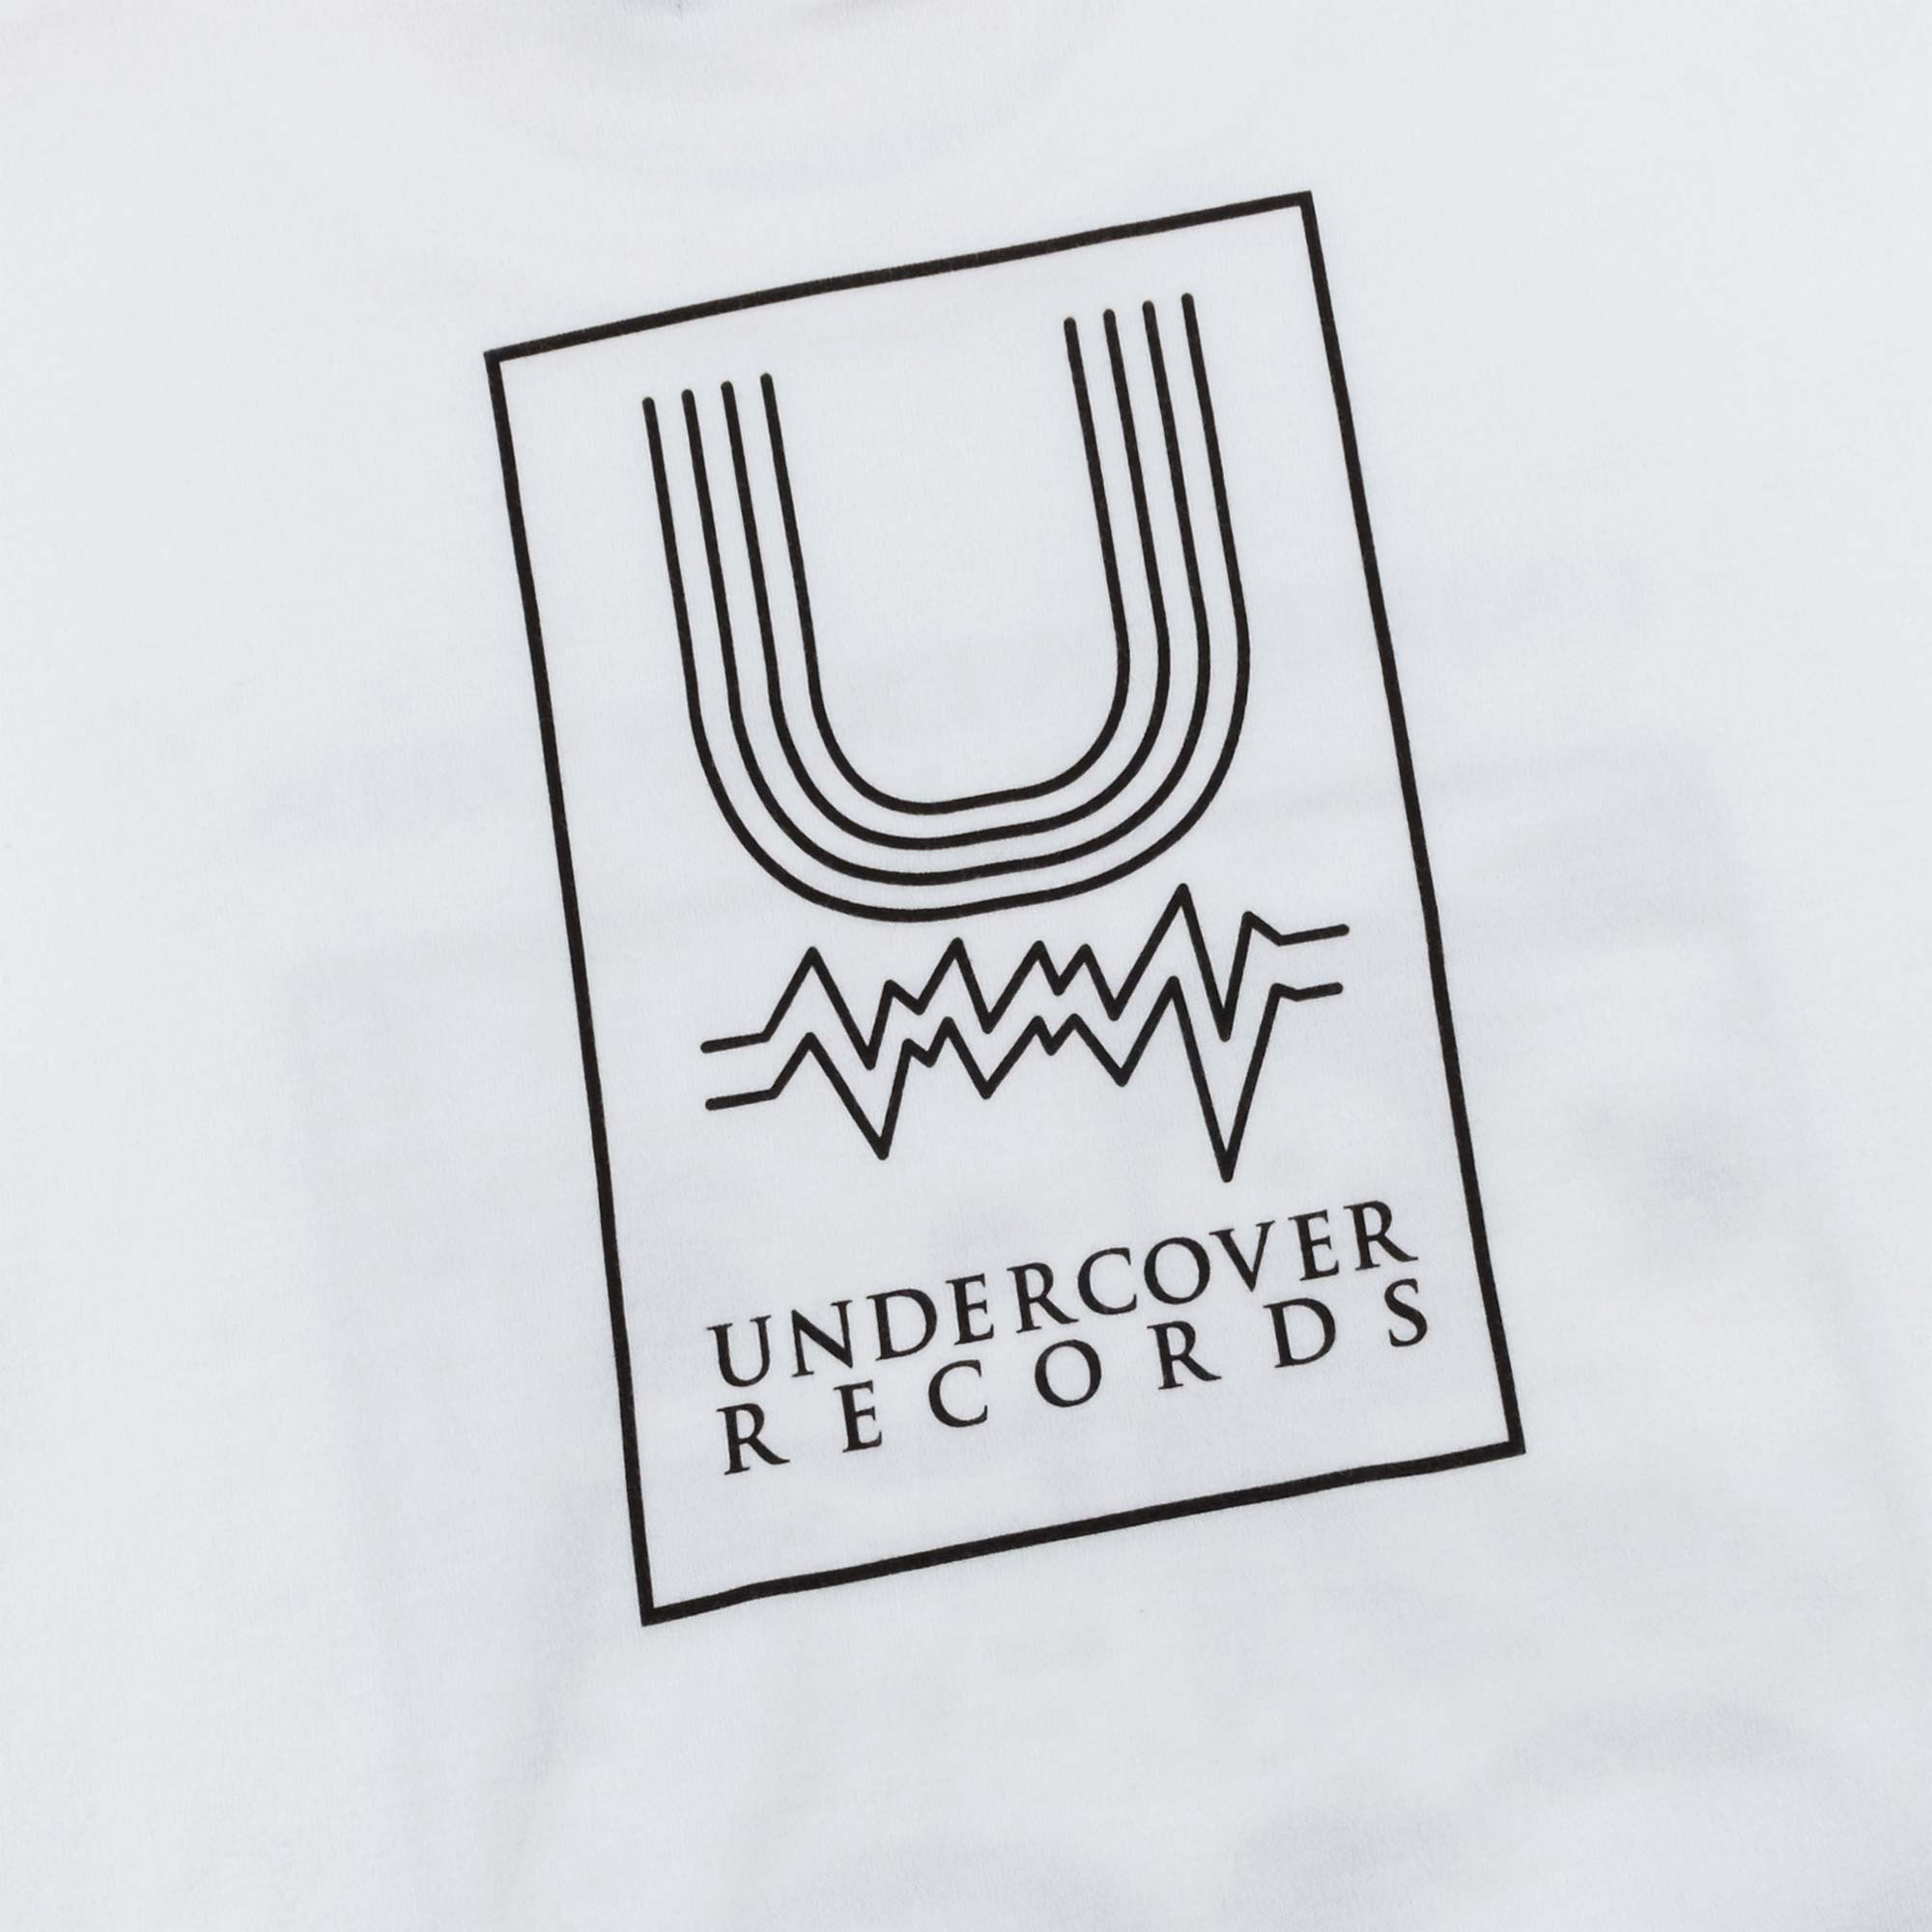 Undercover Records Tee UC1A3803 - White 4